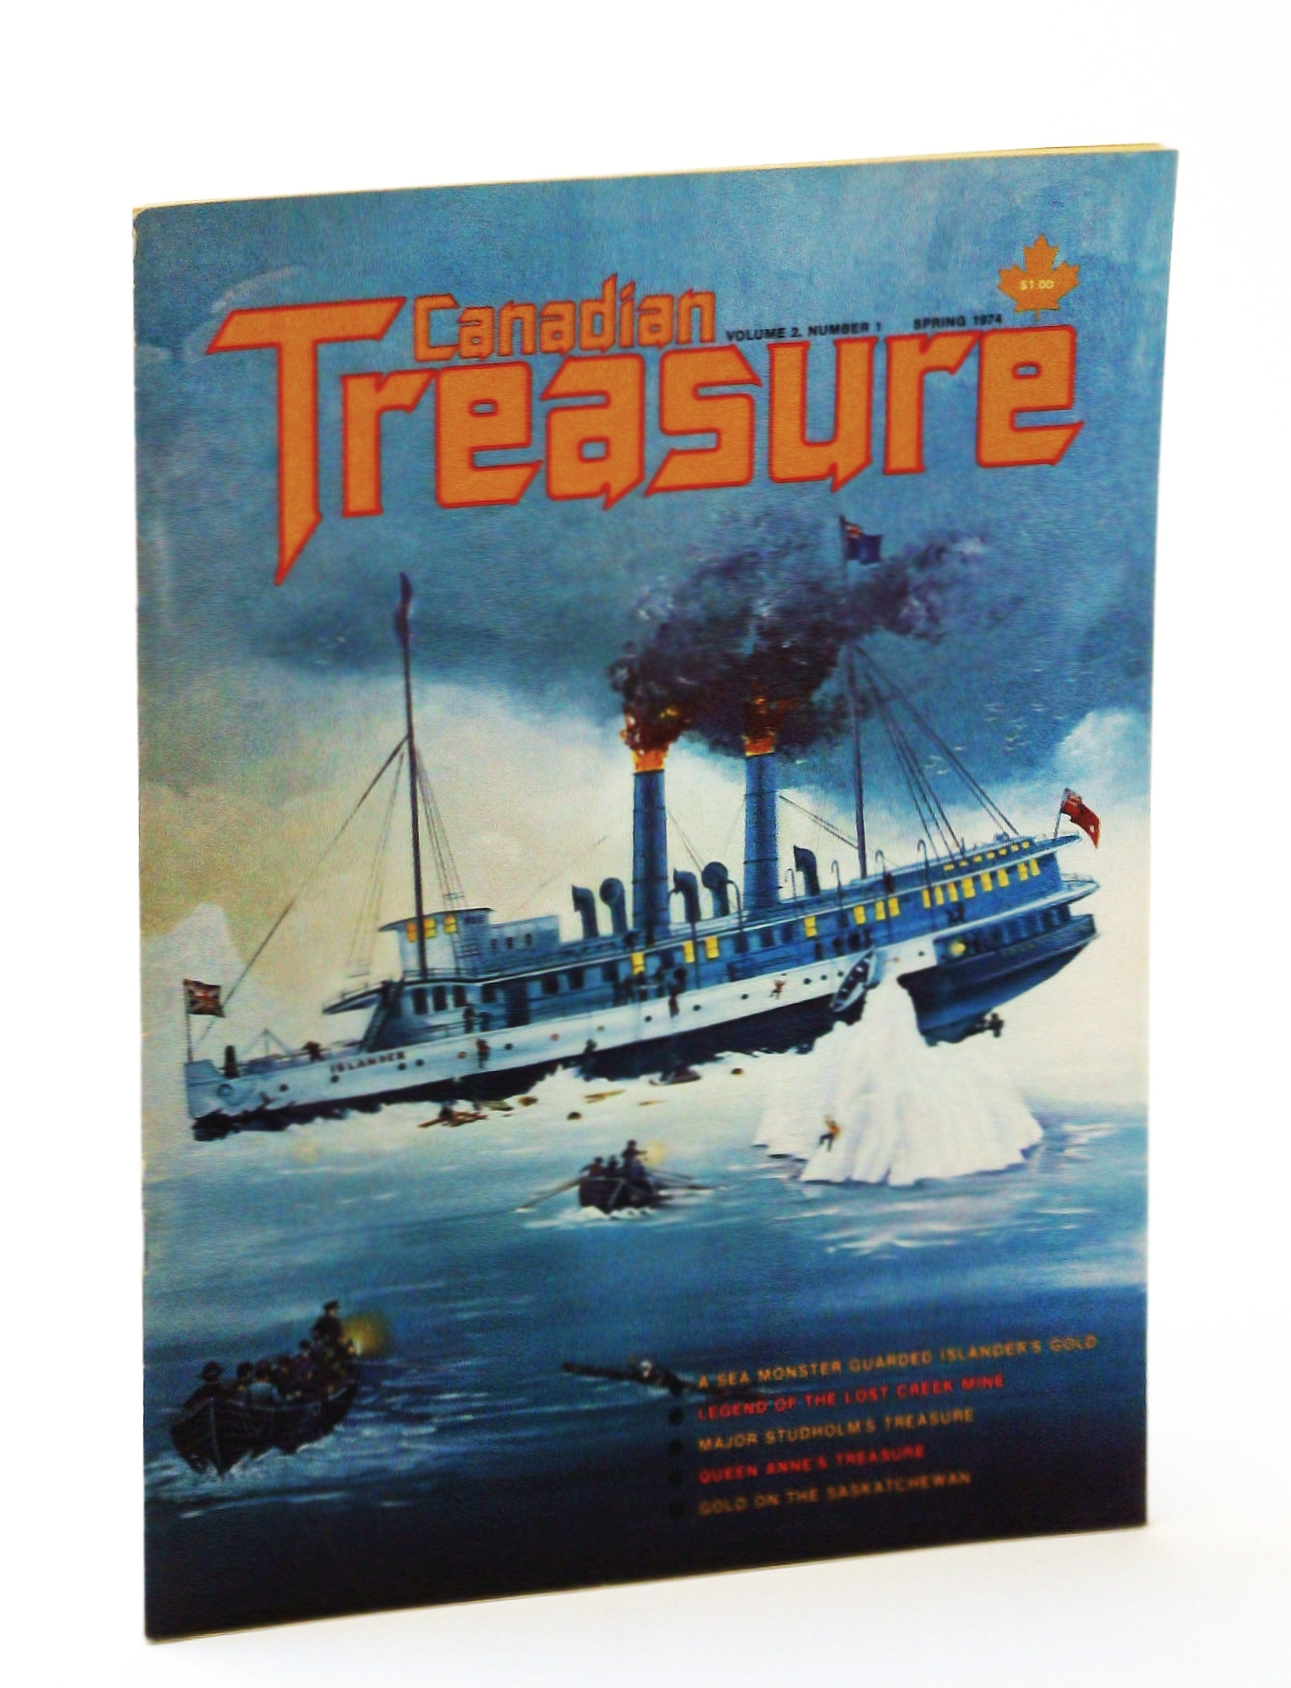 Image for Canadian Treasure Magazine - True Stories on Lost, Sunken and Buried Treasure - Volume 2, Number 1 (Collector's No. 4)